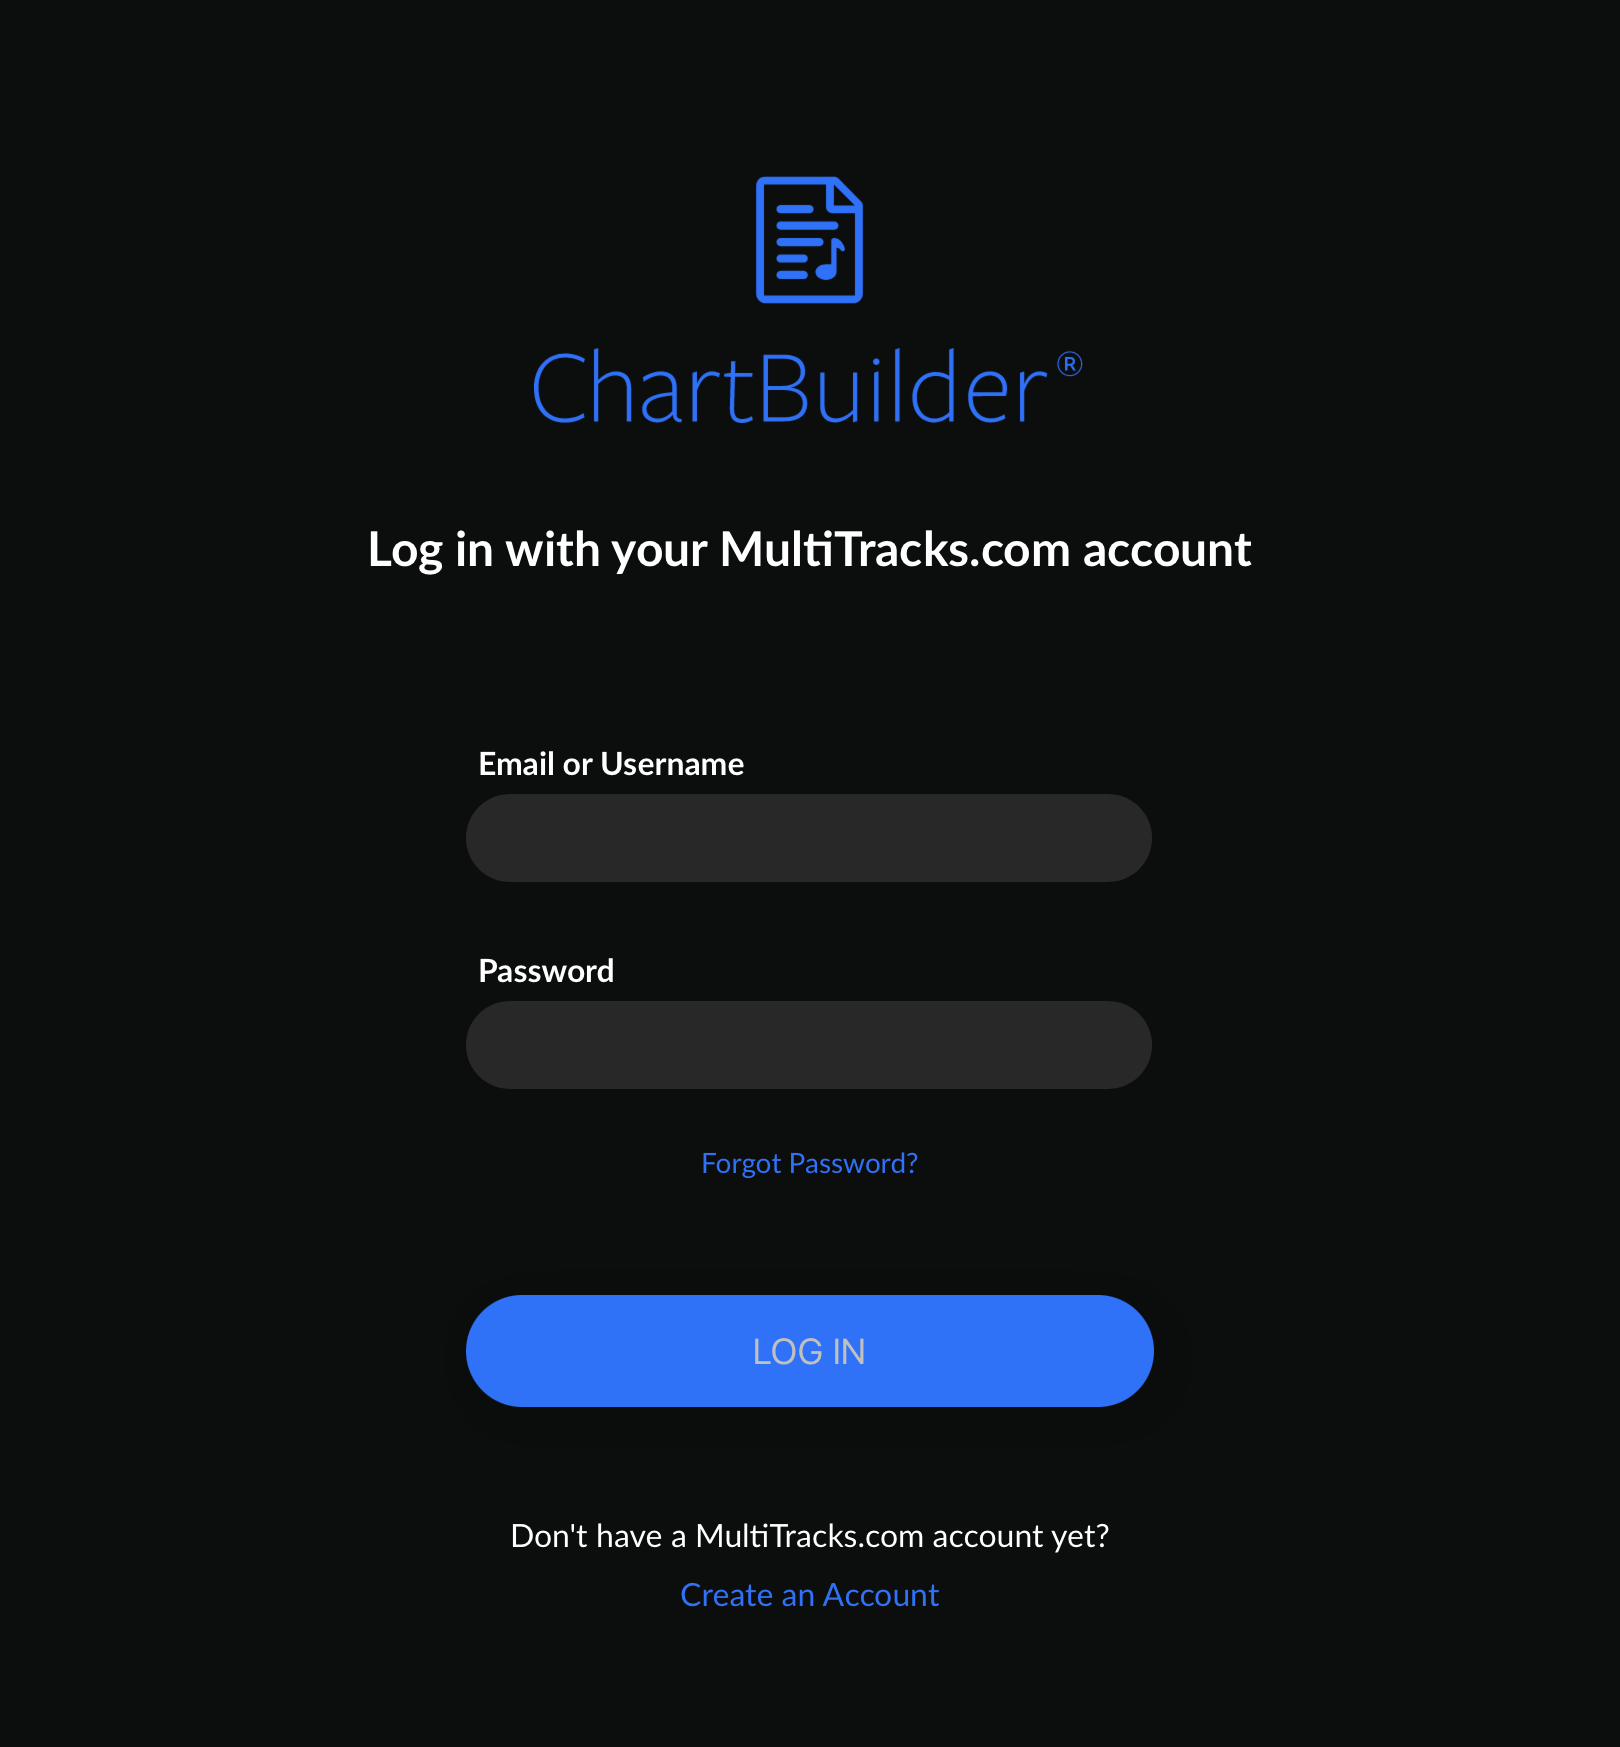 The opening screen of ChartBuilder features the options of logging into an existing MultiTracks.com account or creating a new one.